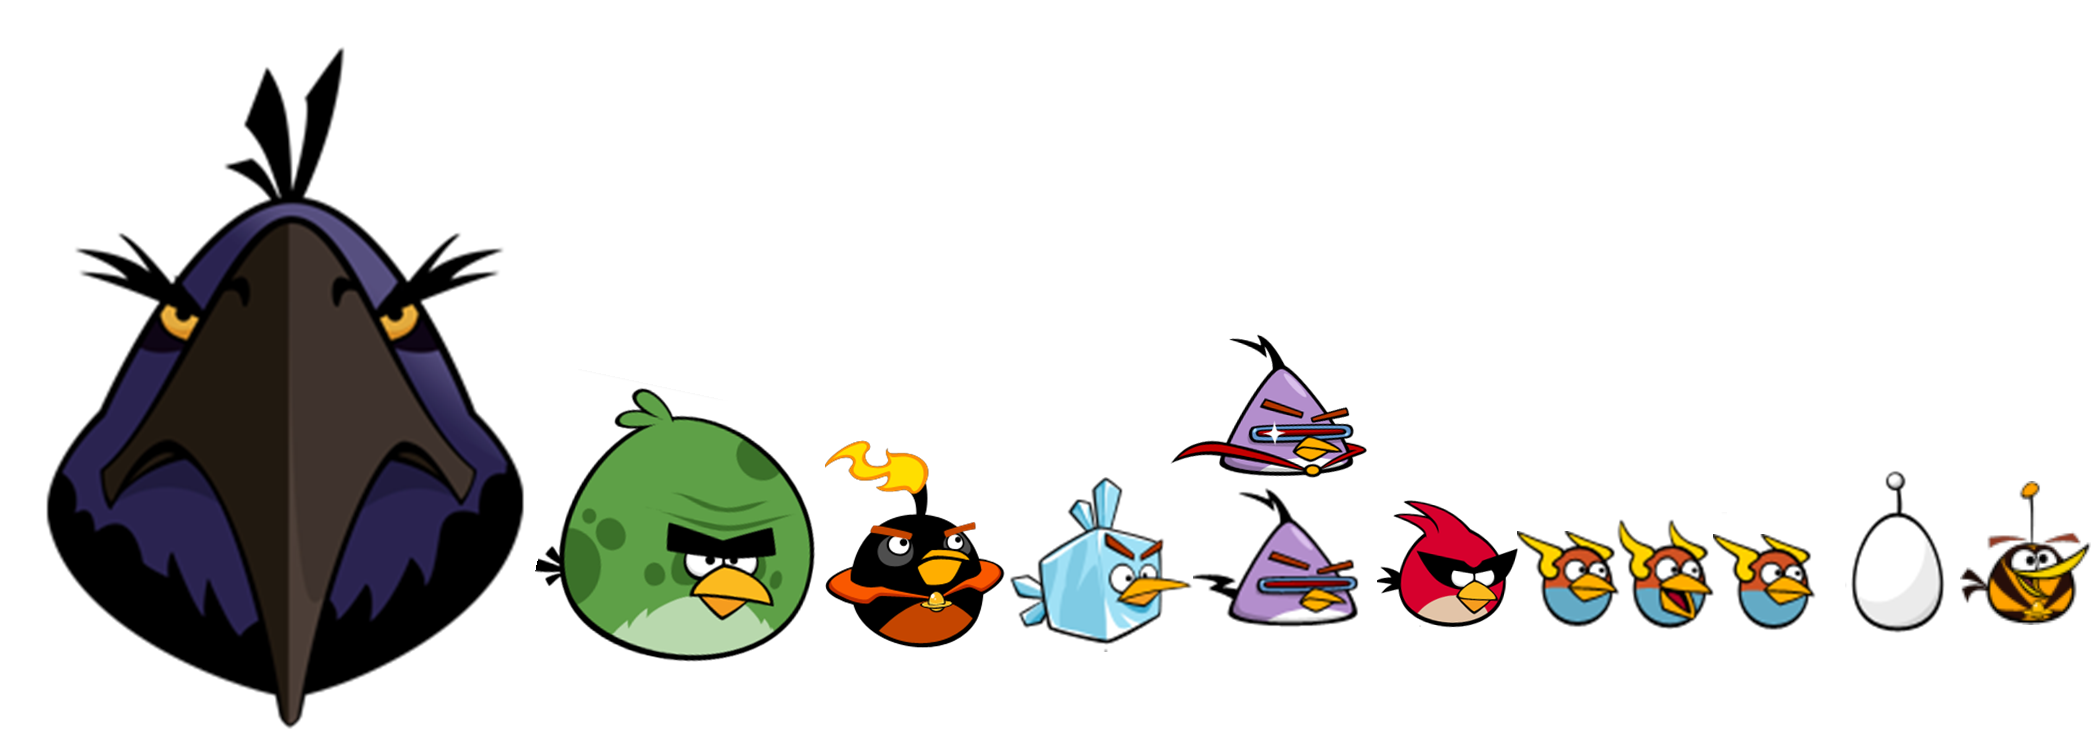 image space birds 2 png angry birds wiki fandom powered by wikia